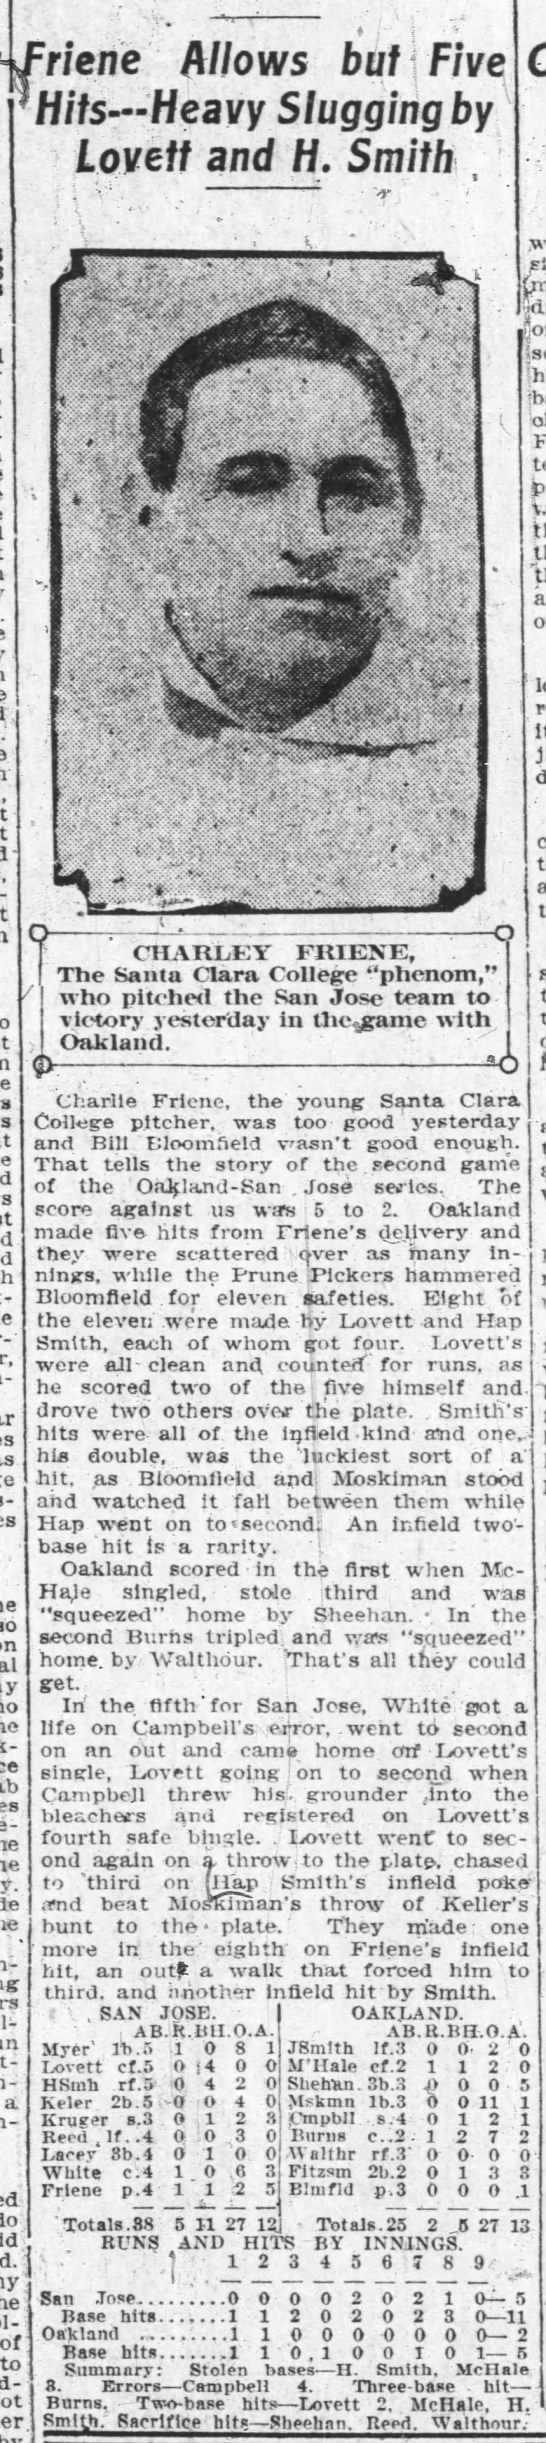 Charley Friene Allows but Five Hits 1909